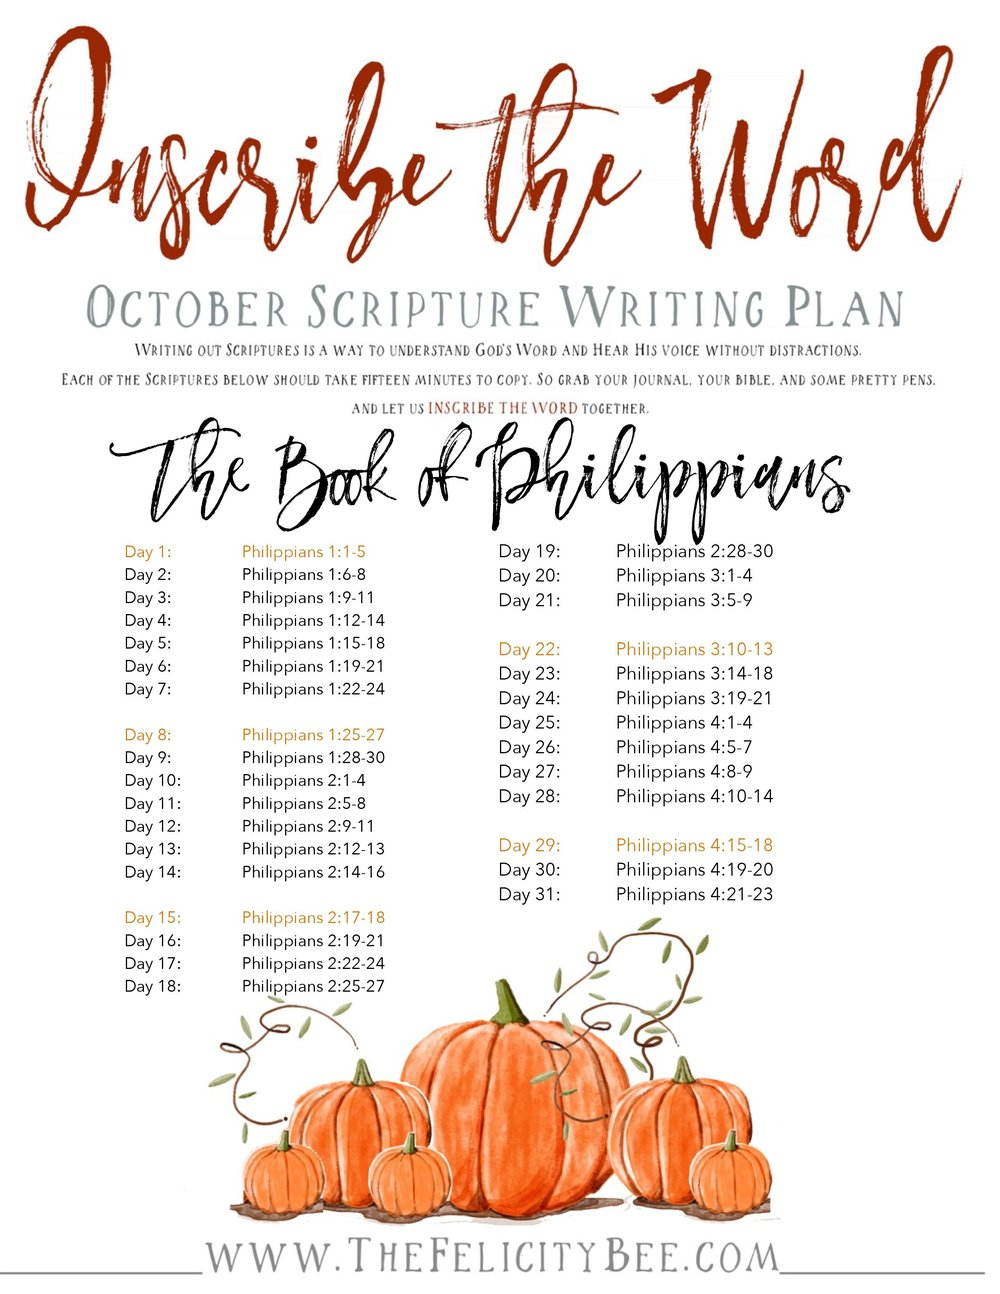 Scripture-Writing-Plan-Felicity-Bee-October